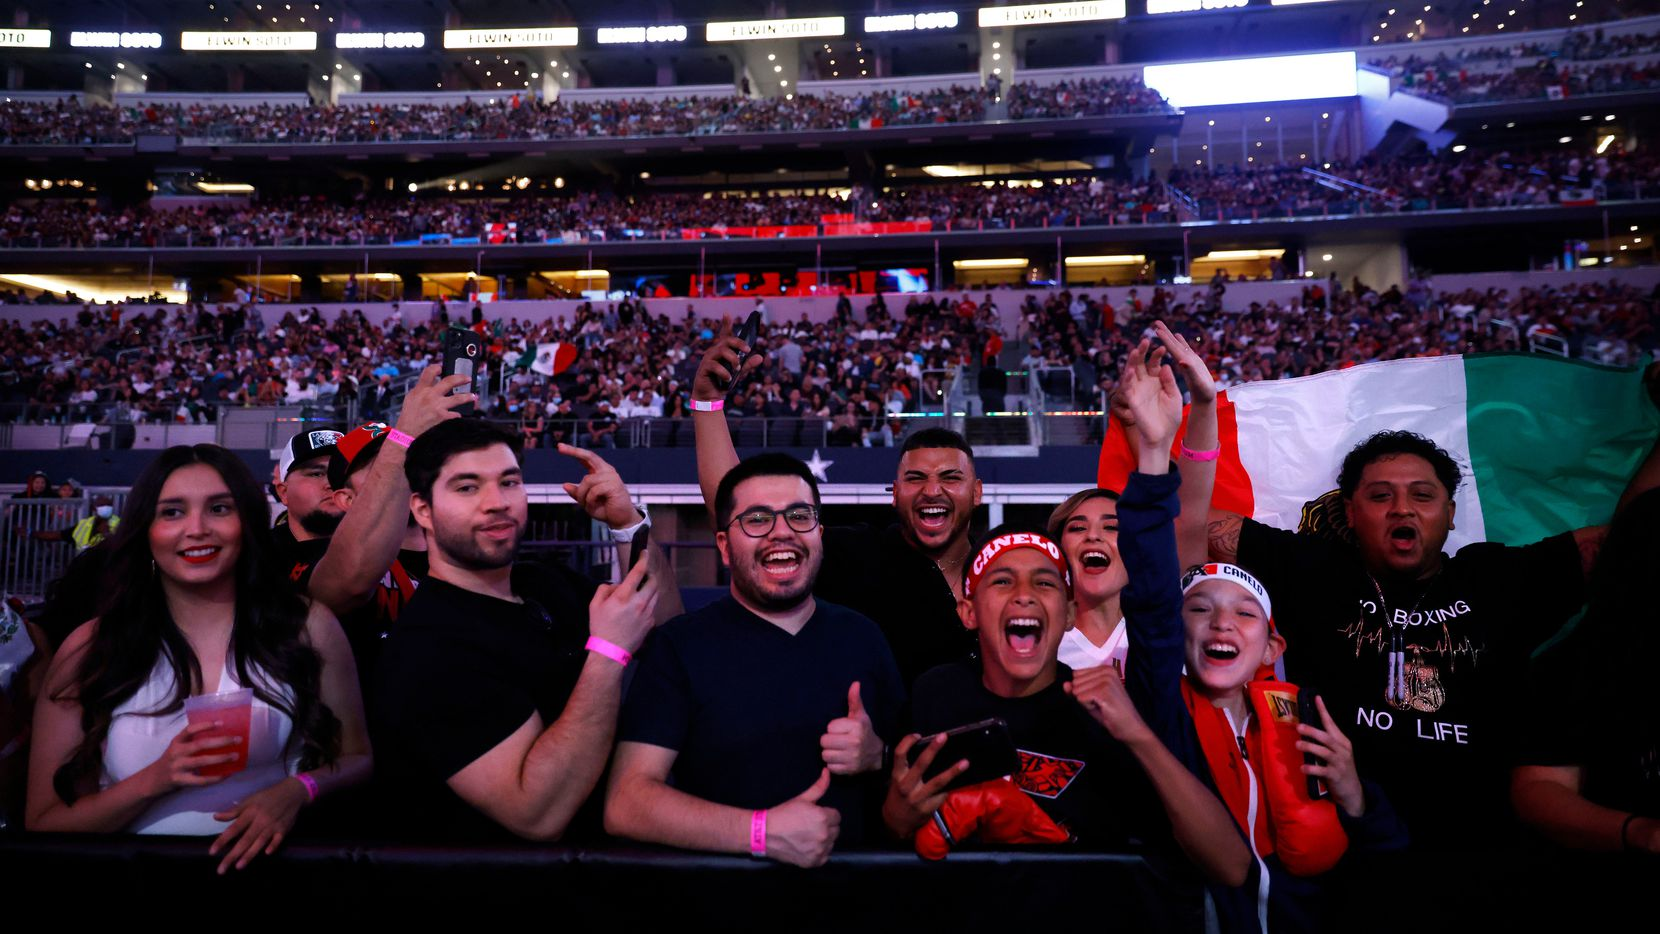 Elwin Soto of Baja California, Mexicoand Katsunari Takayama of Osaka, Japan is introduced before a large crowd watching the WBO World Light-Flyweight title at AT&T Stadium in Arlington, Saturday, May 8, 2021.They were waiting for the Canelo Alvarez-Billy Joe Saunders fight.